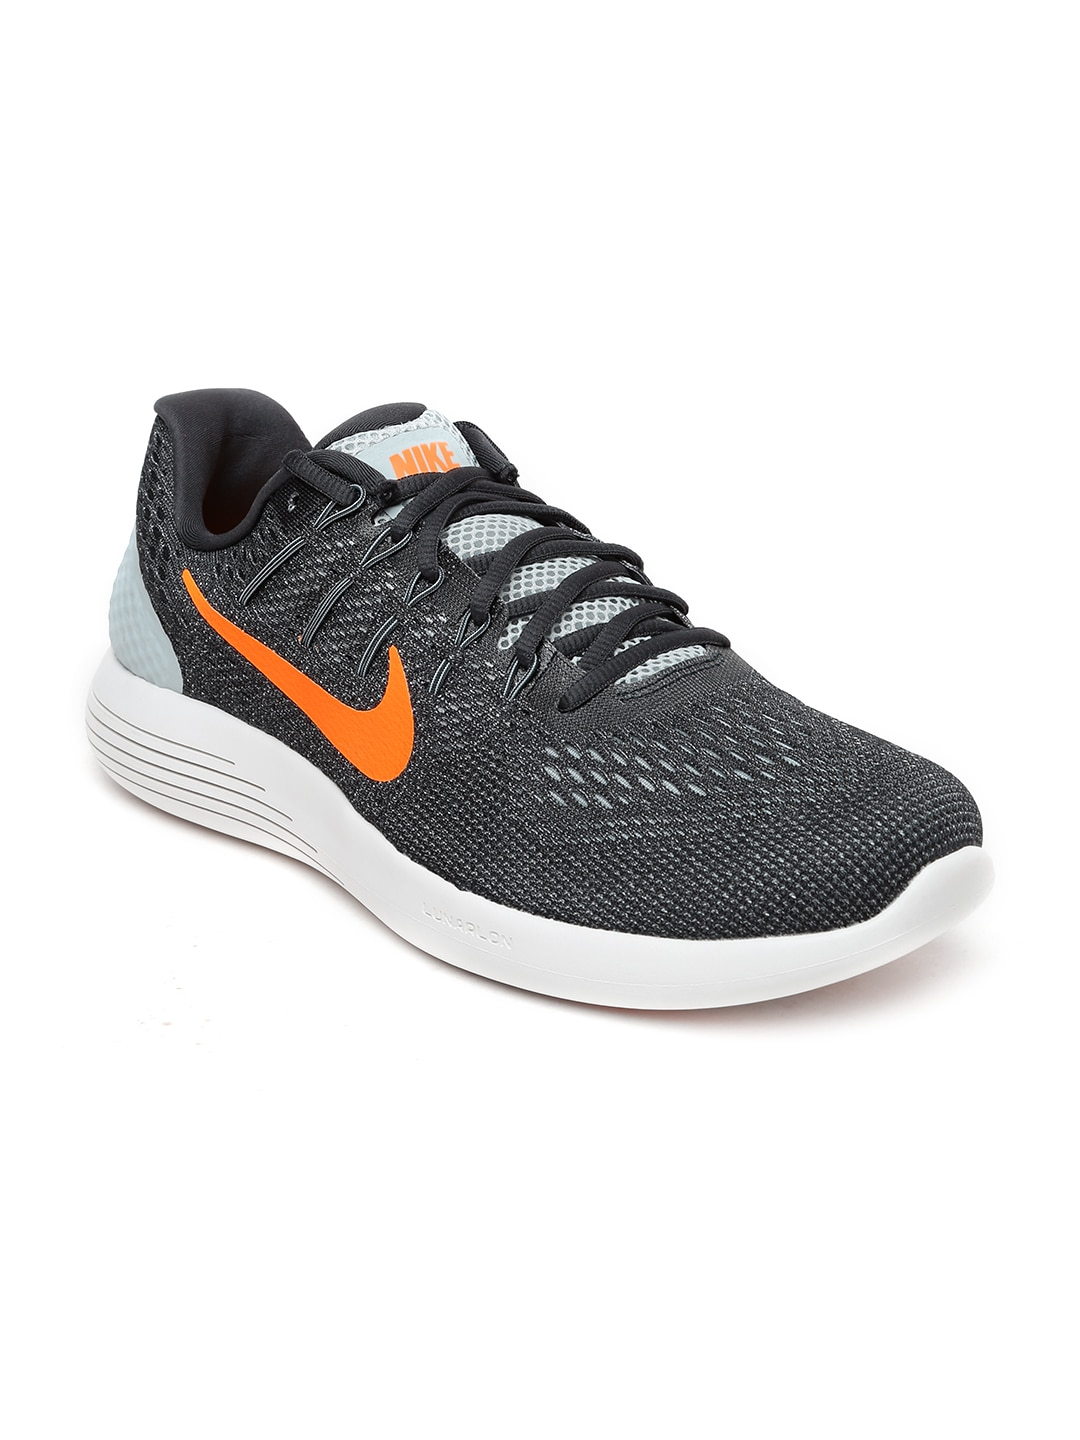 Nike Lunar Eclipse Price India Musee Des Impressionnismes Giverny